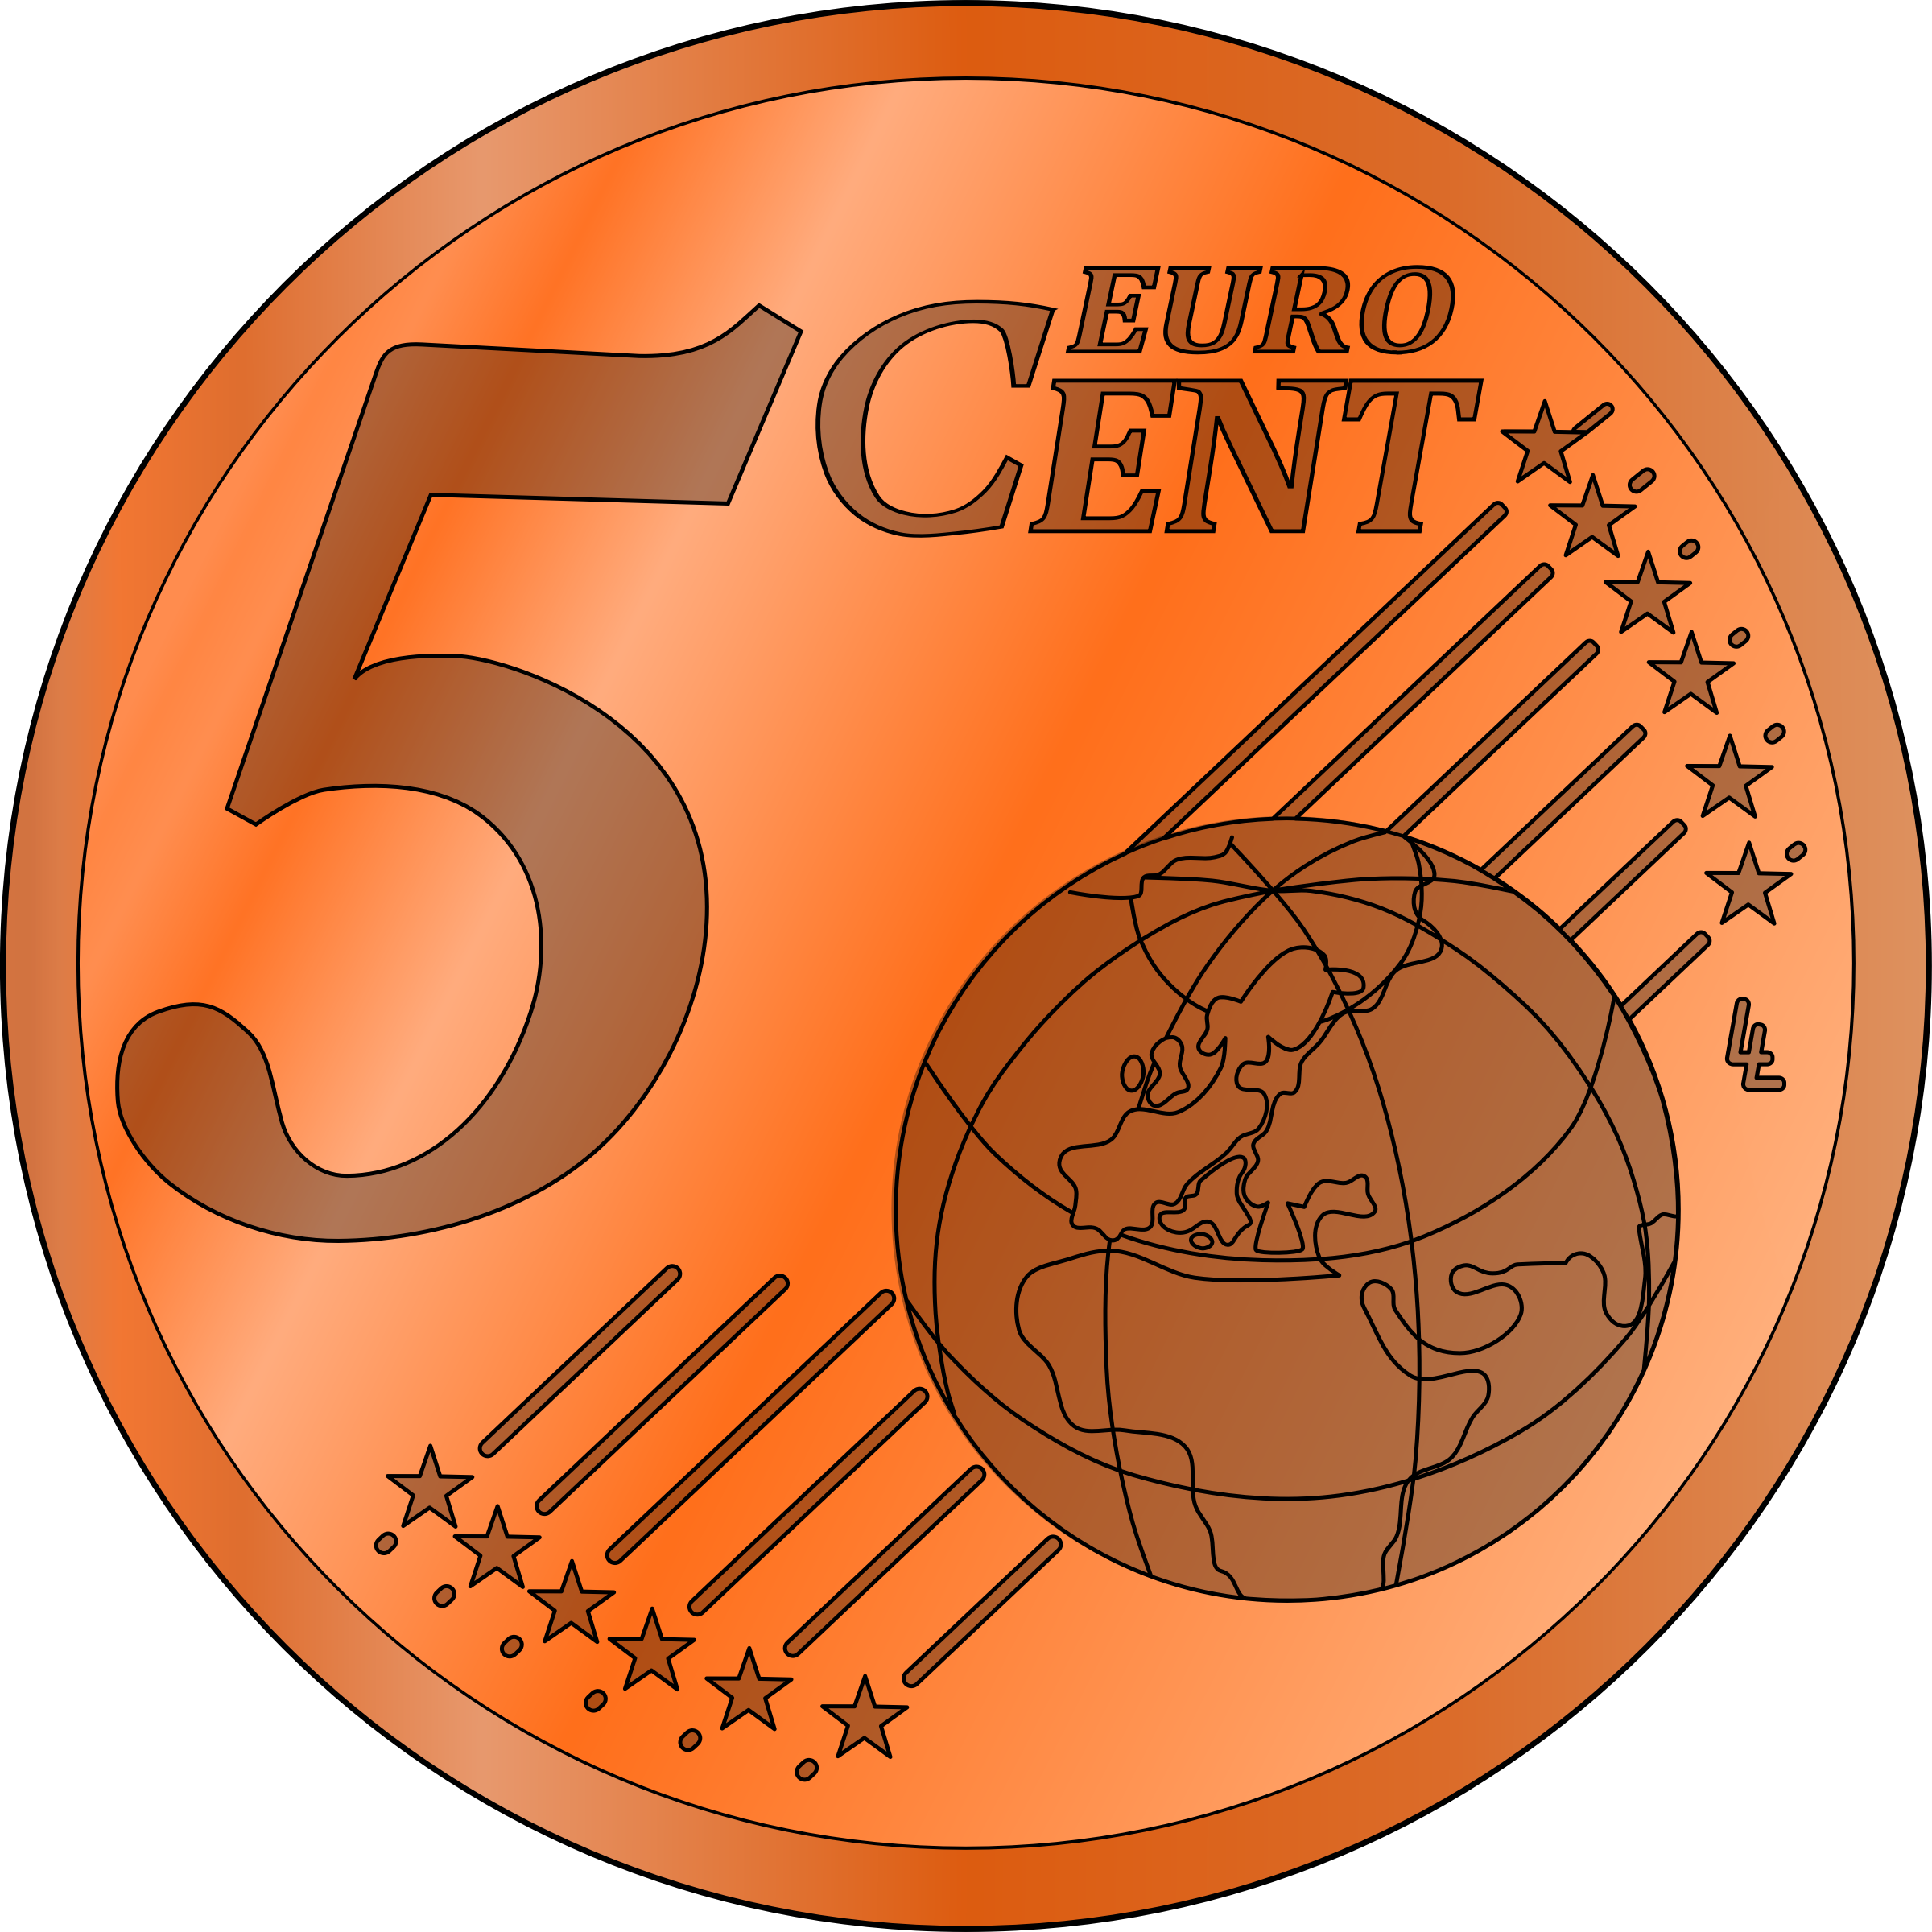 Penny clipart png. Five euro cent big